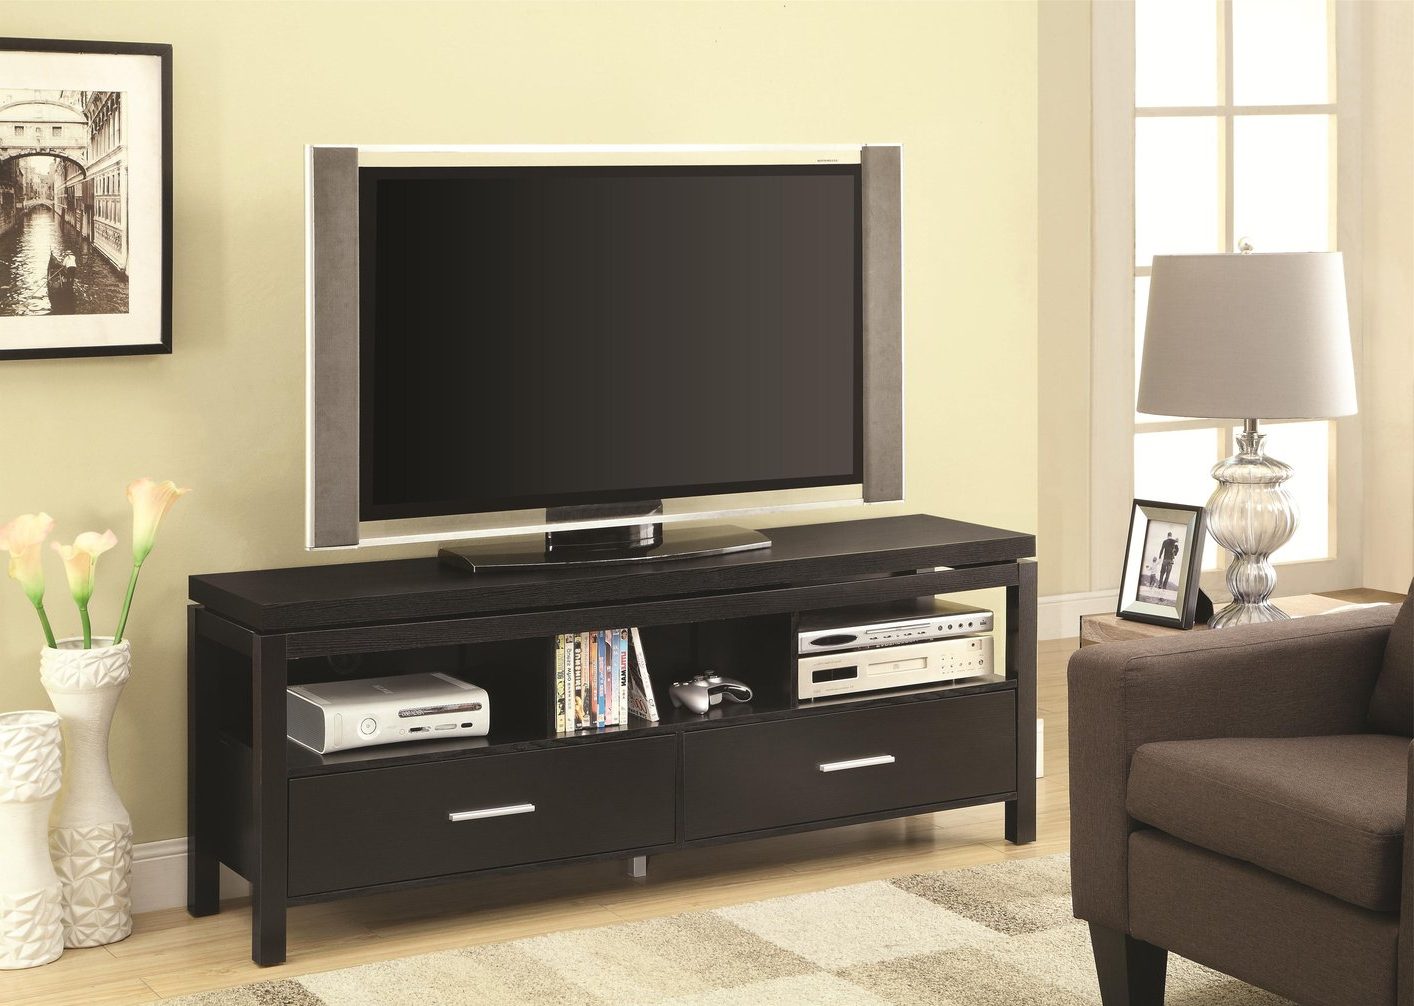 Black Wood Tv Stand – Steal A Sofa Furniture Outlet Los Within Edgeware Black Tv Stands (View 18 of 20)